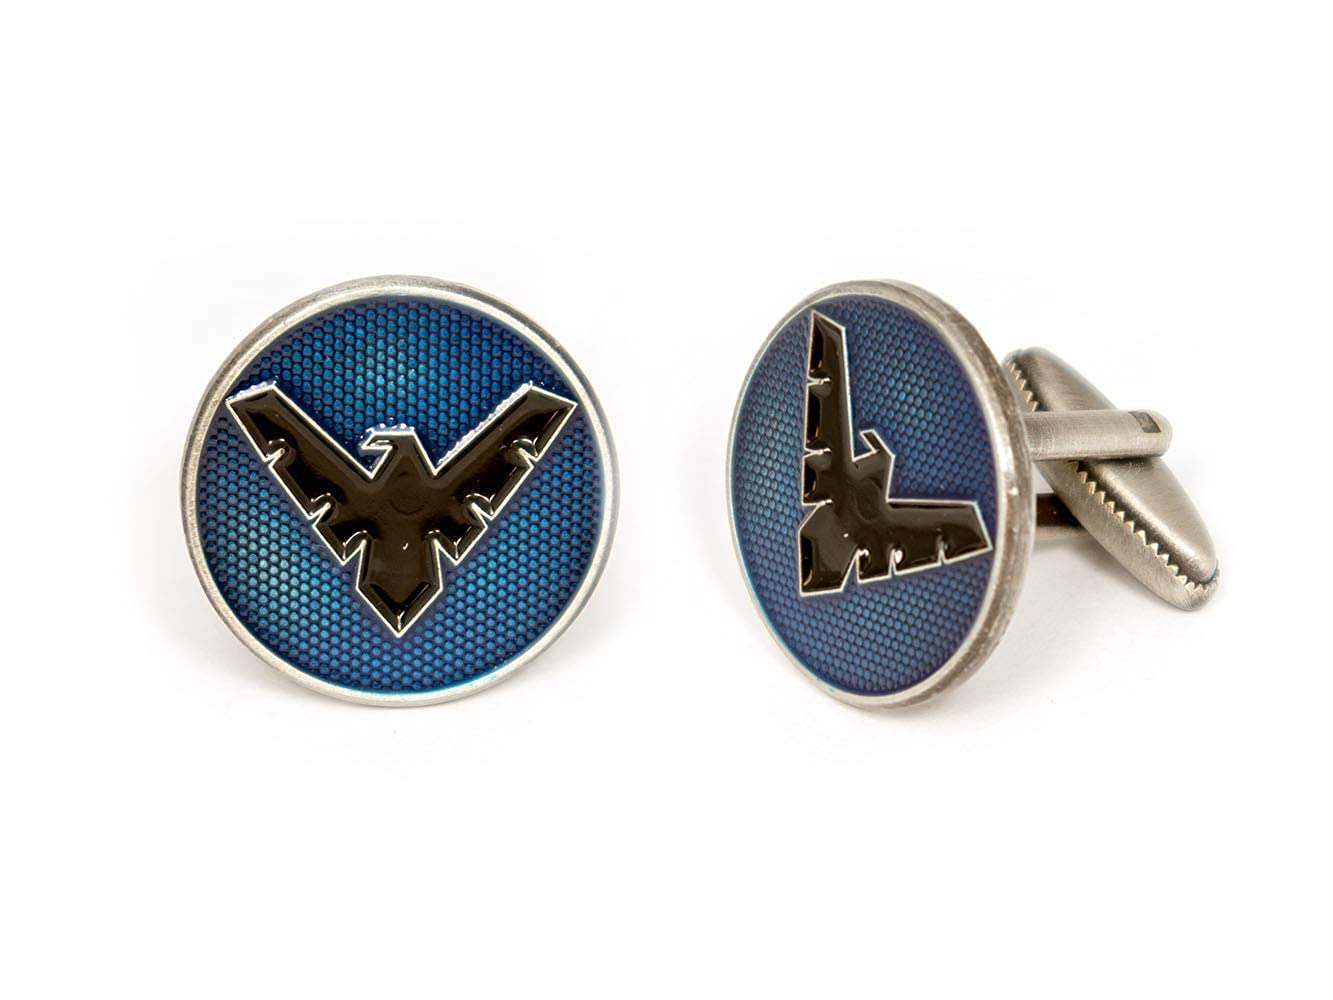 DC Comics Batman vs Superman Tie Tack Jewelry Teen Titans Robin Cuff Links Link Wedding Party Gift Justice League Logo Tie Clip Avengers Groomsmen Gifts Justice League Logo Cufflinks SharedImagination Nightwing Cufflinks